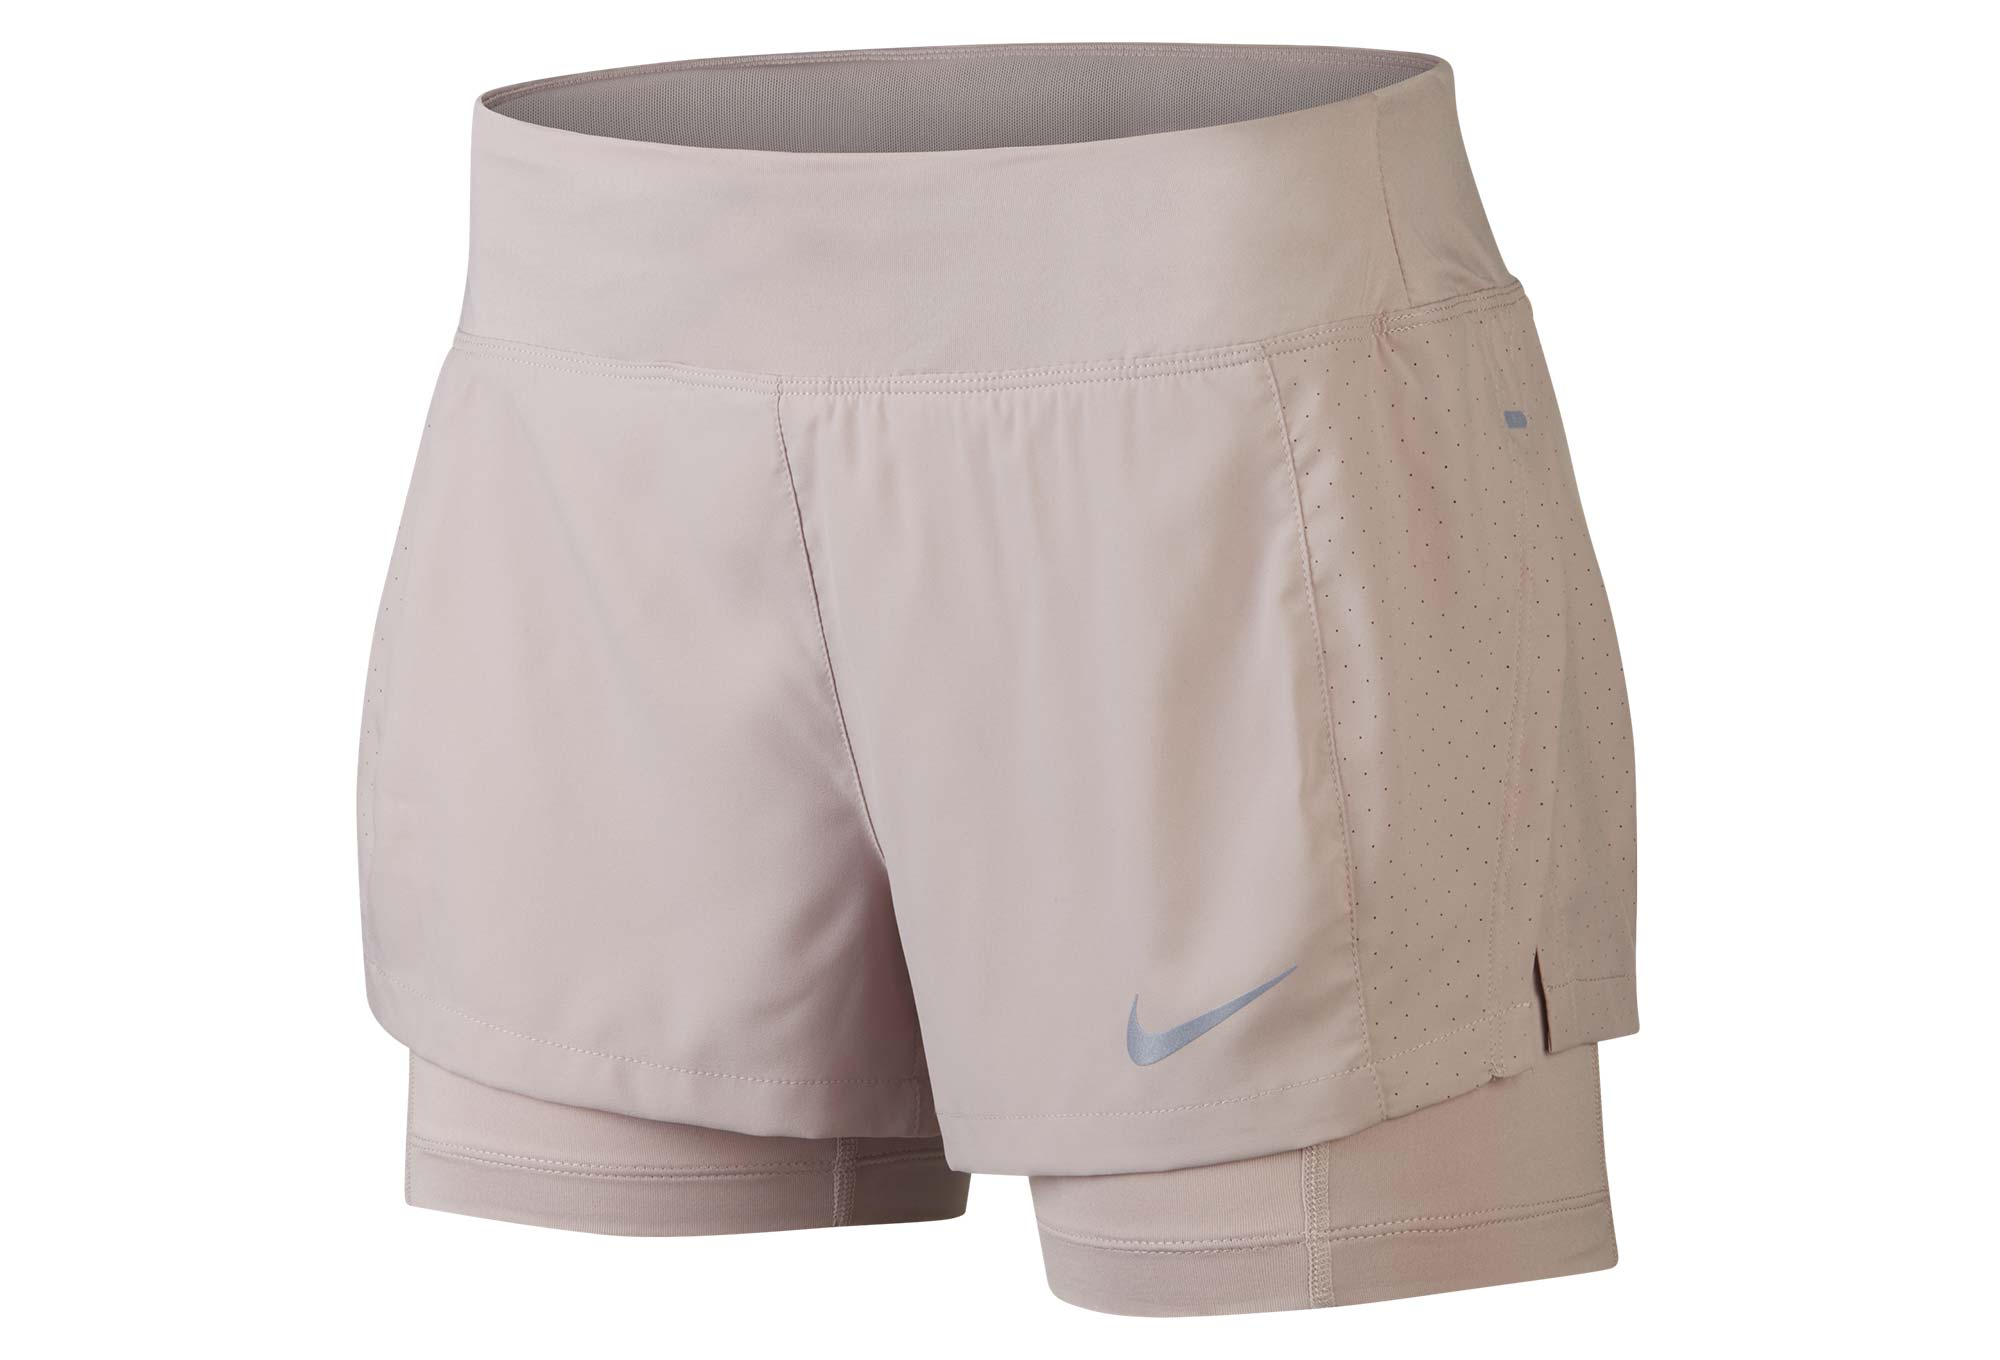 Pantaloncini Nike Eclipse Donna 2 in 1 Rosa